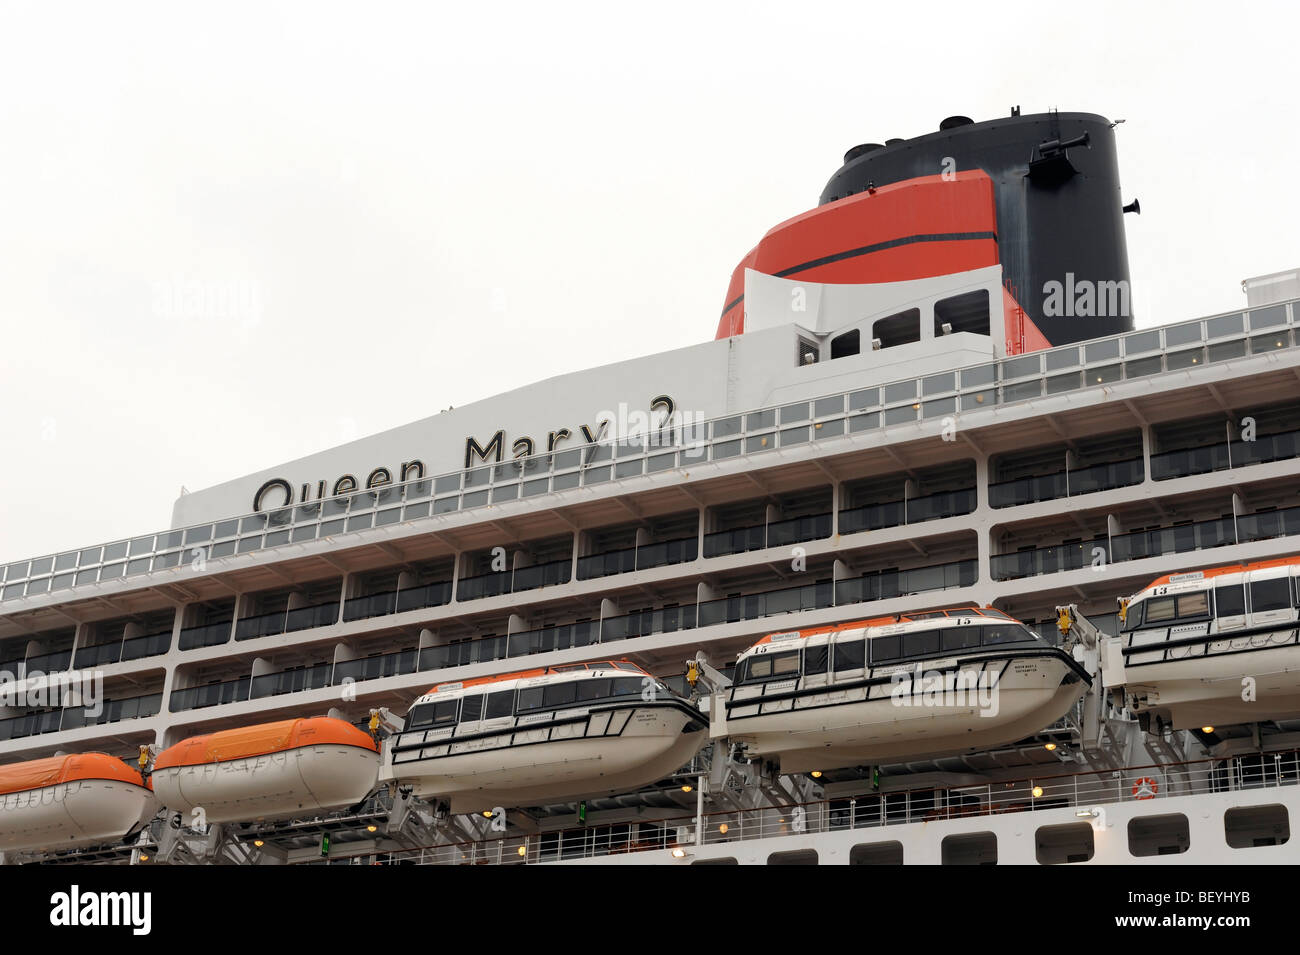 Cunard Queen Mary 2 cruise liner berthed in Liverpool - Stock Image